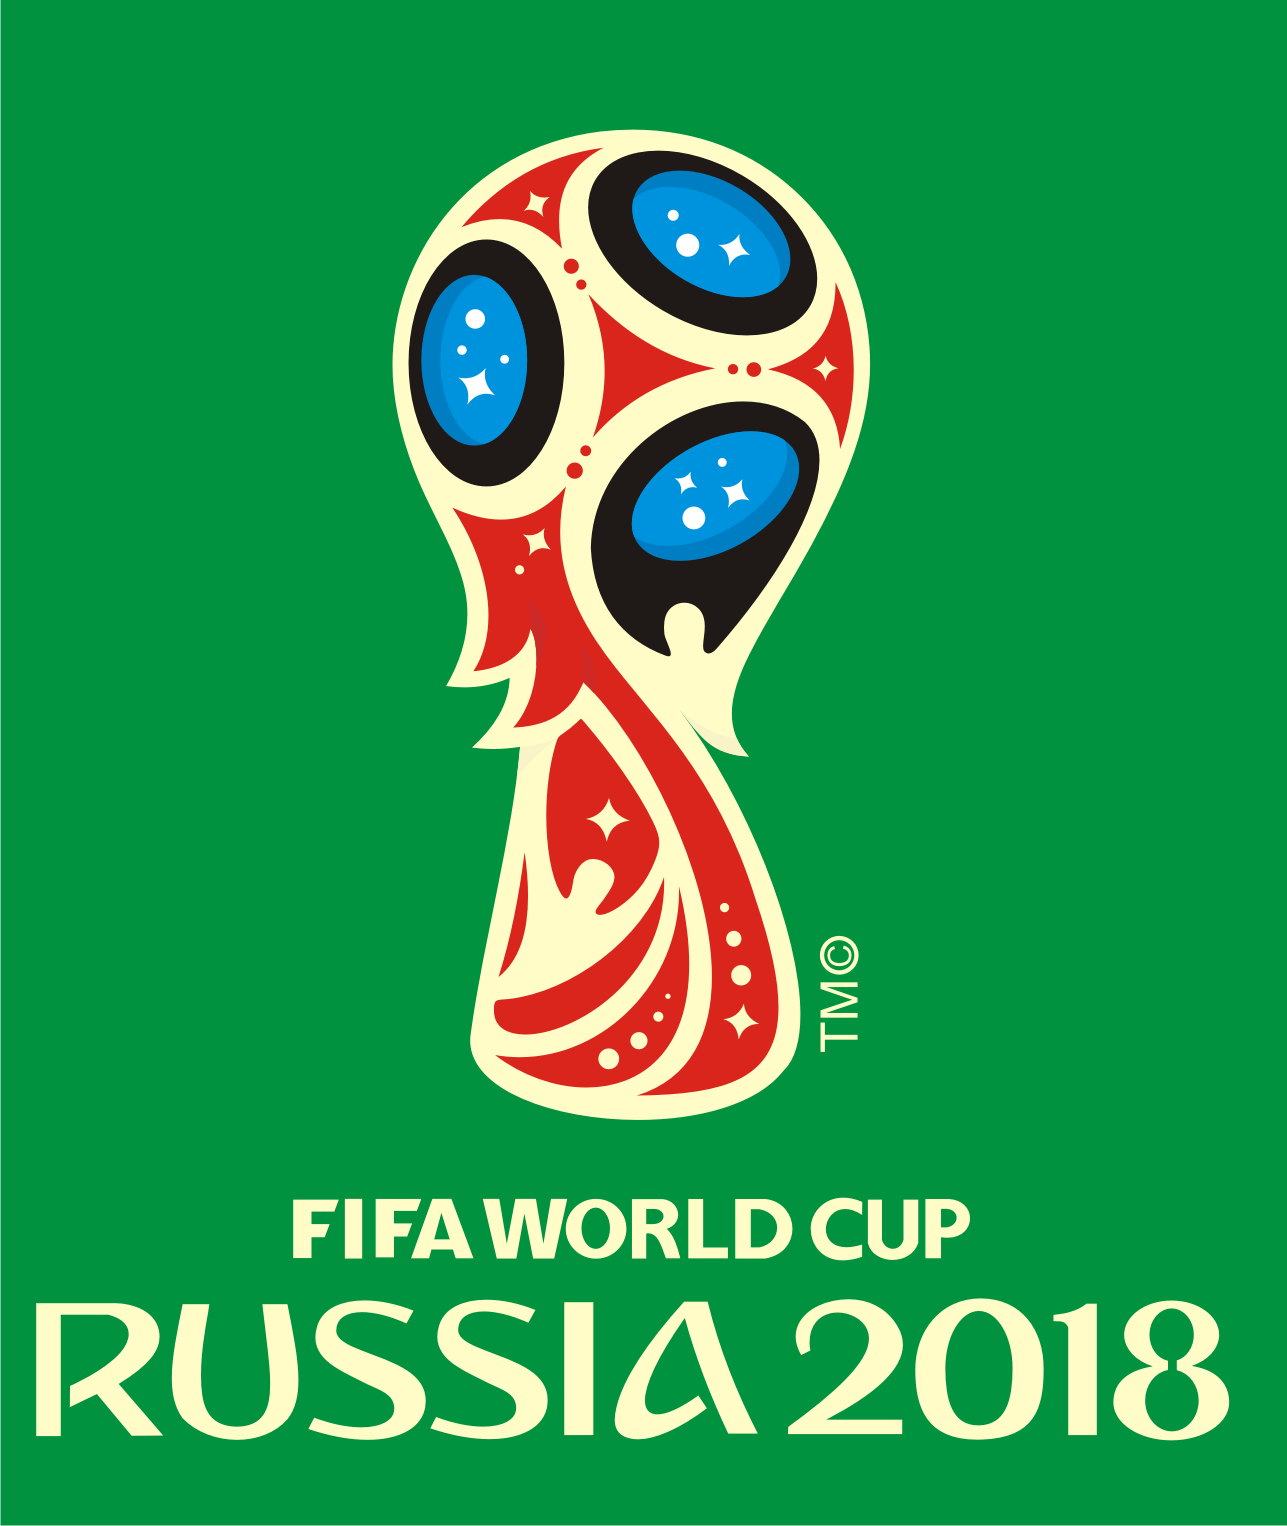 The Winners Will Qualify For The 2021 FIFA Confederations Cup. - Fifa World Cup 2018 Logo PNG